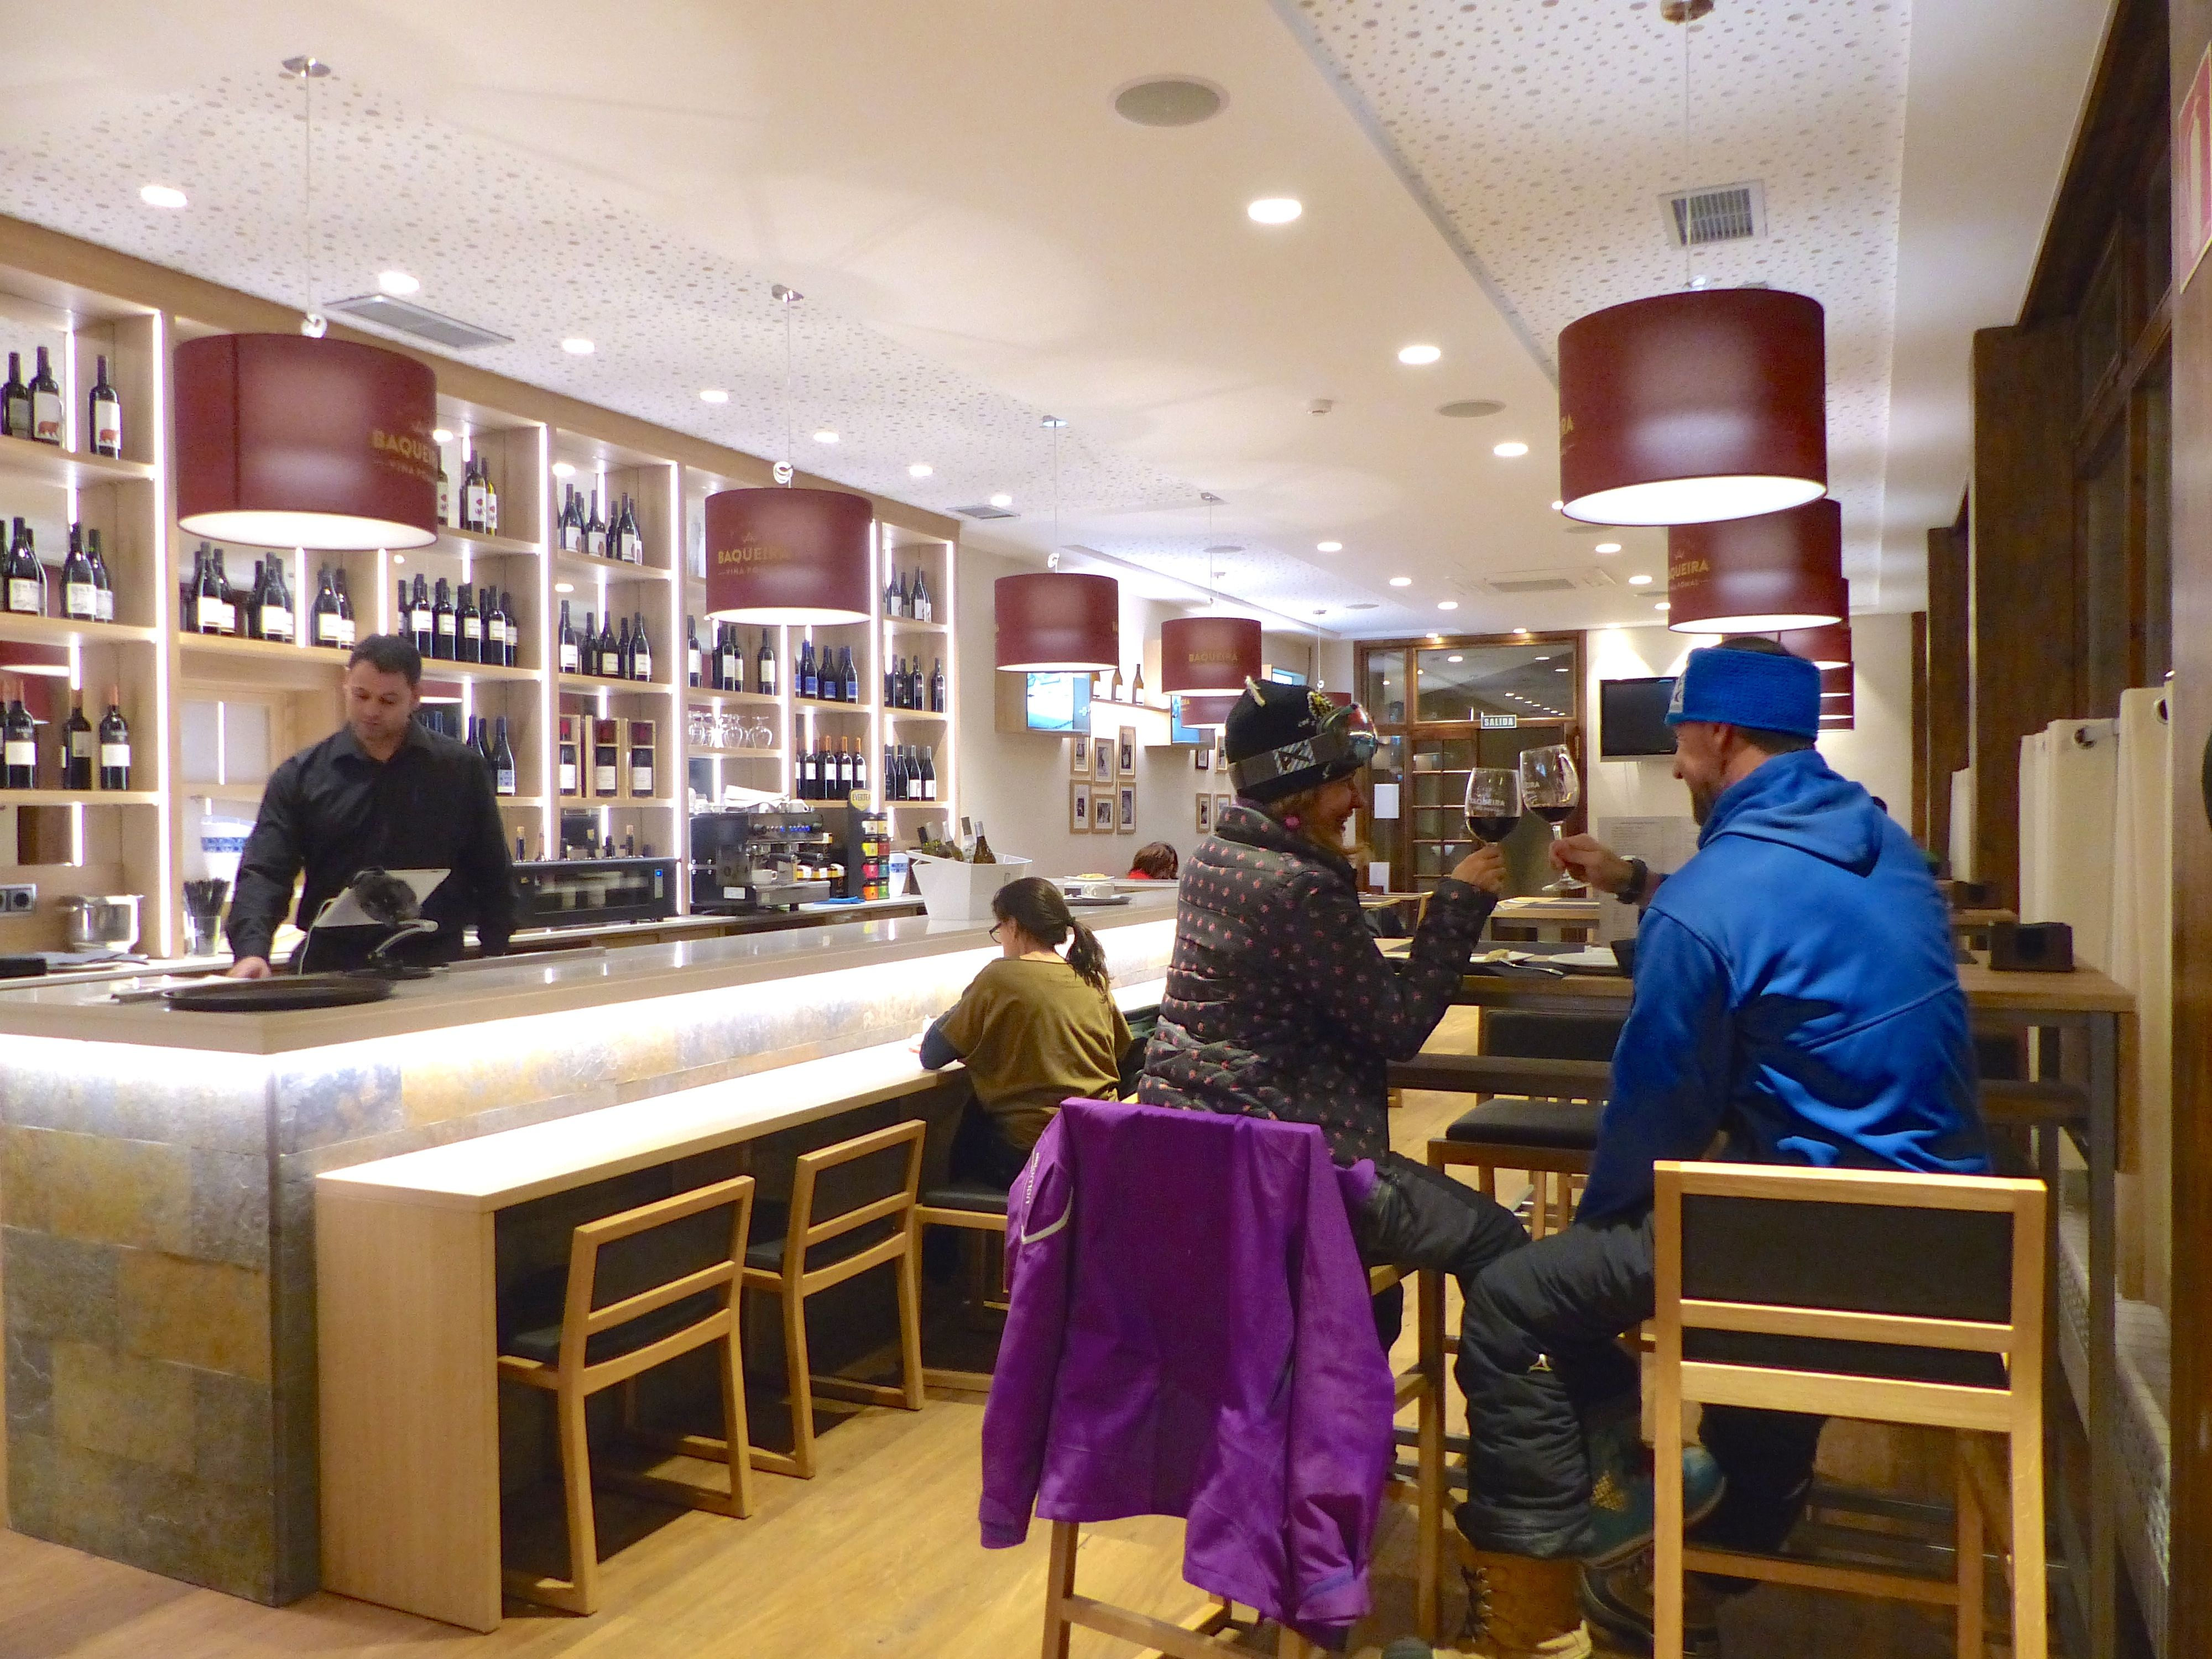 Wine Bar in Baqueira Beret. © Baqueira Beret